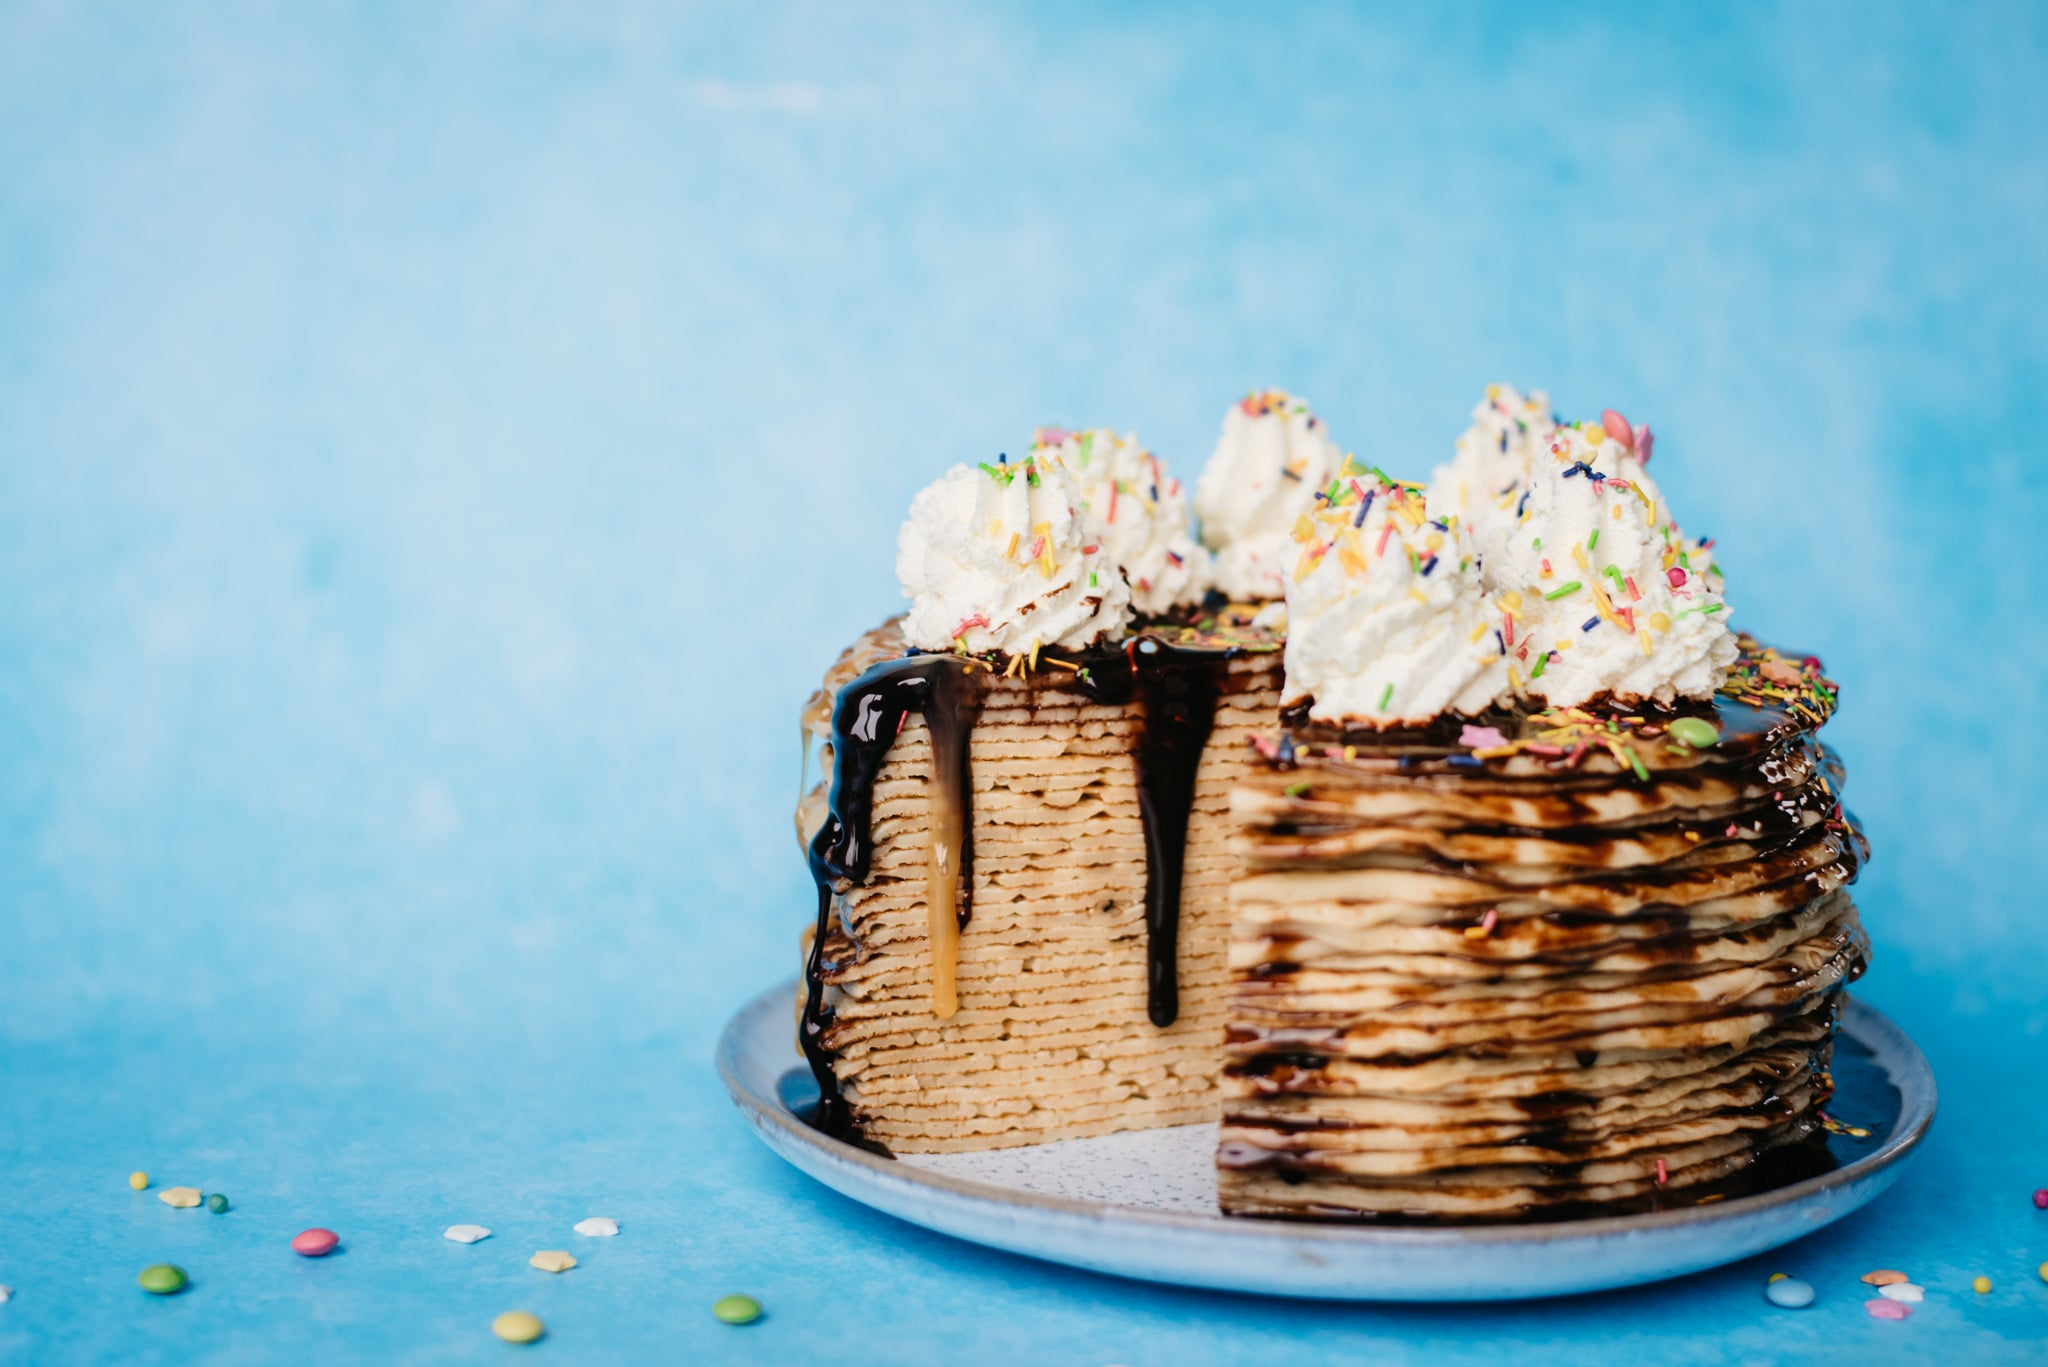 Crepe Cake with slice removed, covered in chocolate and toffee sauce, topped with whipped cream and sprinkles